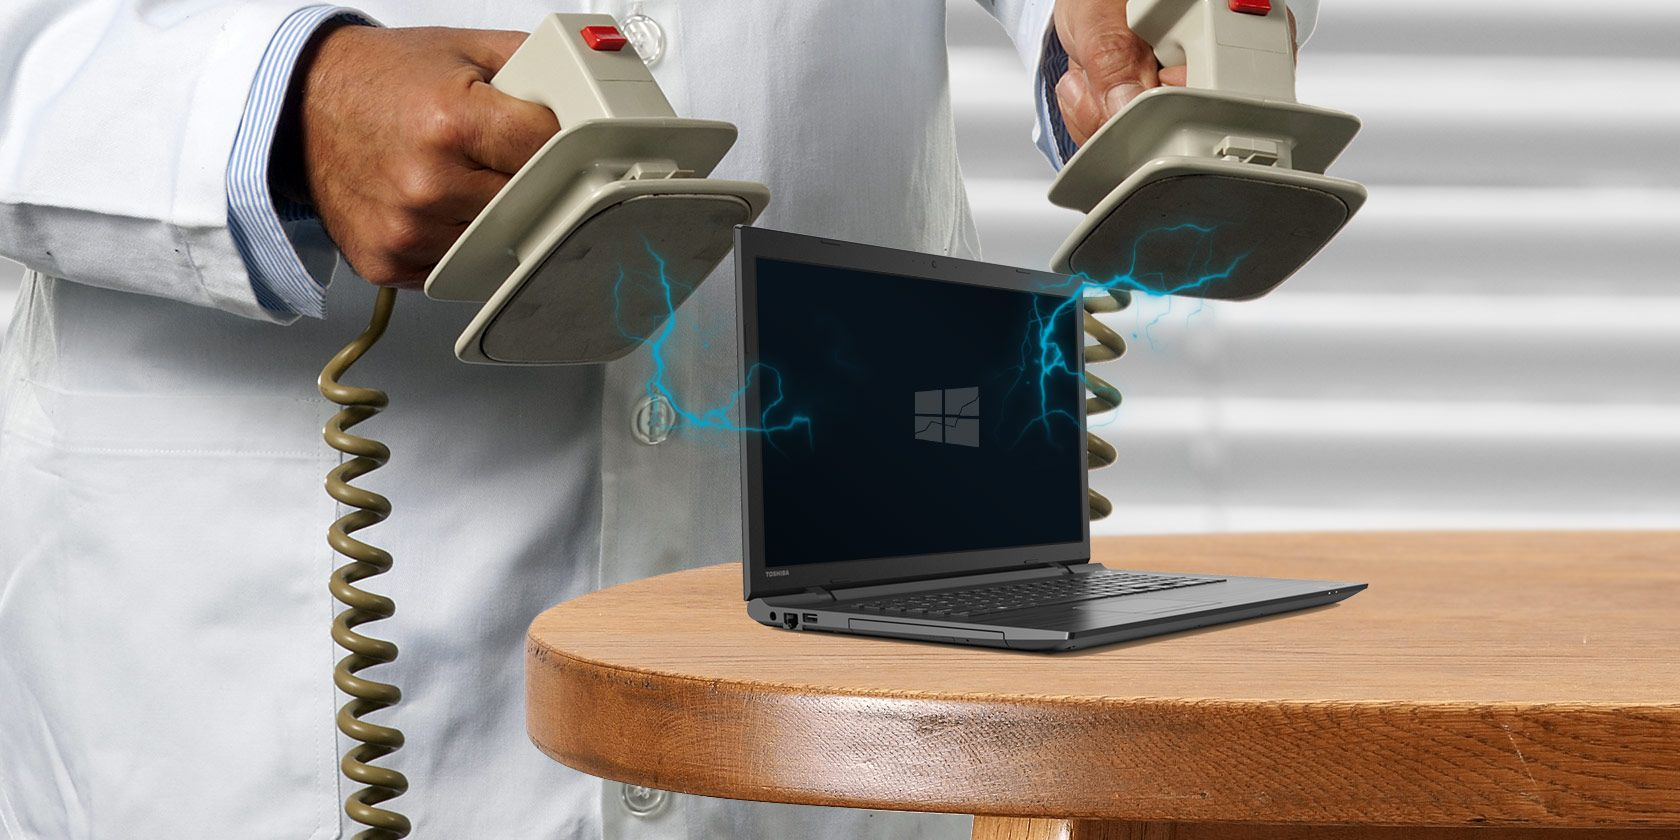 A Quick Tip for Repairing Boot Errors in Windows 10